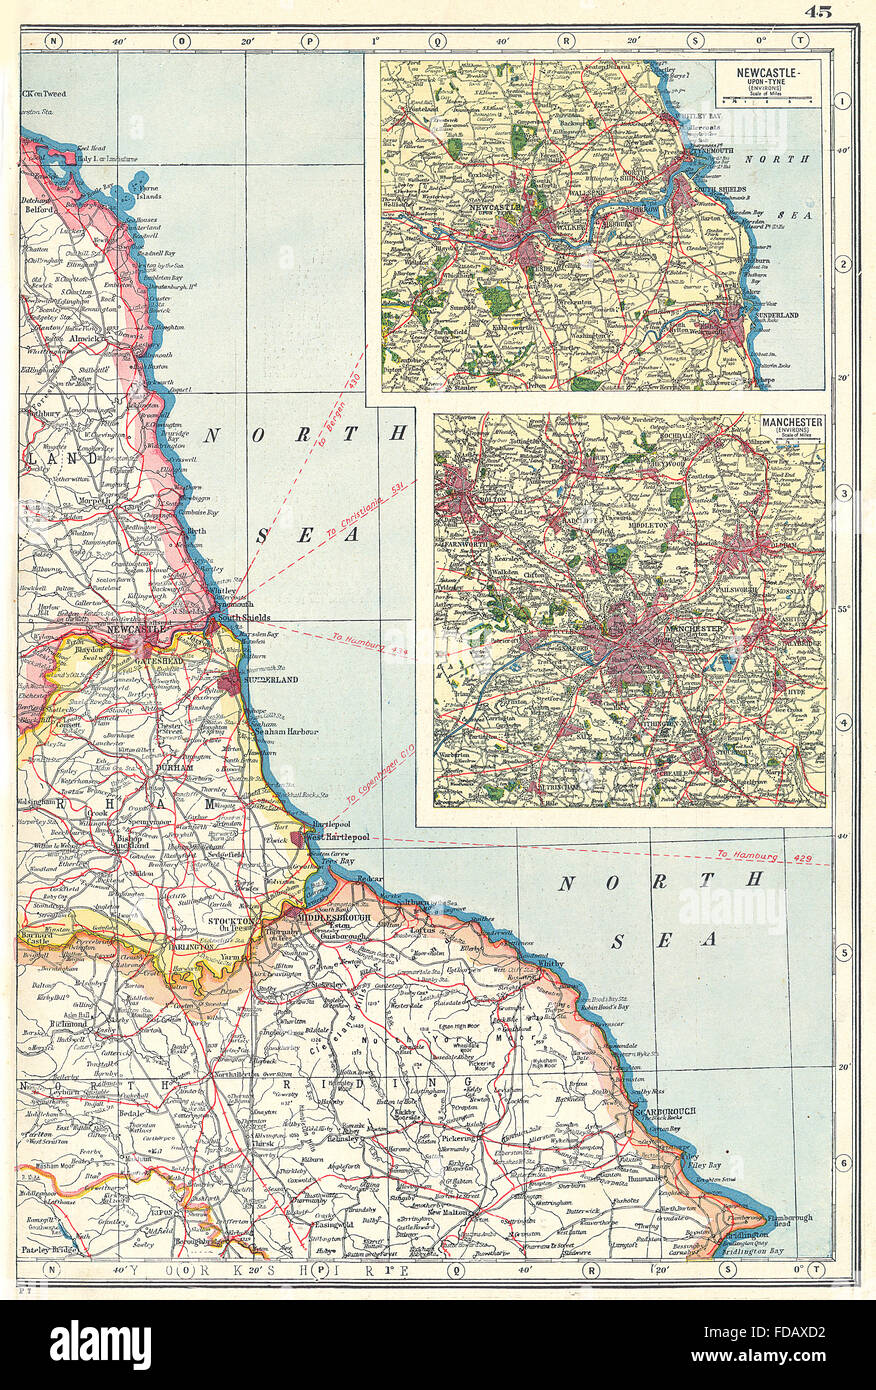 Map Of England Durham.North East England Coast Durham Yorks Northumbs Newcastle Upon Tyne